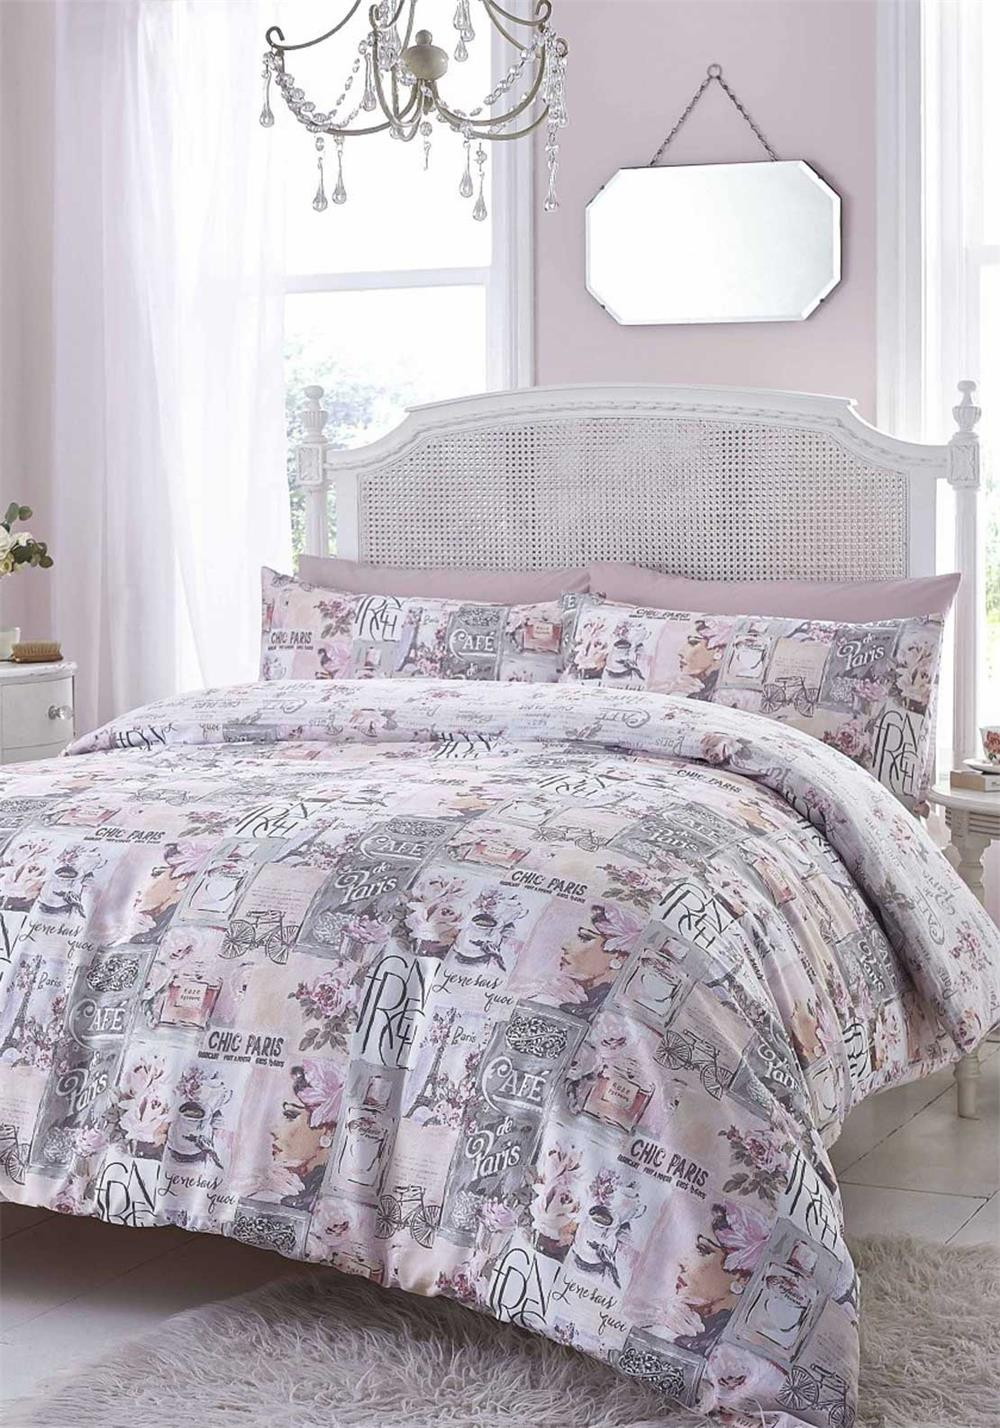 Catherine Lansfield Café De Paris Cotton Rich Duvet Set, Pink